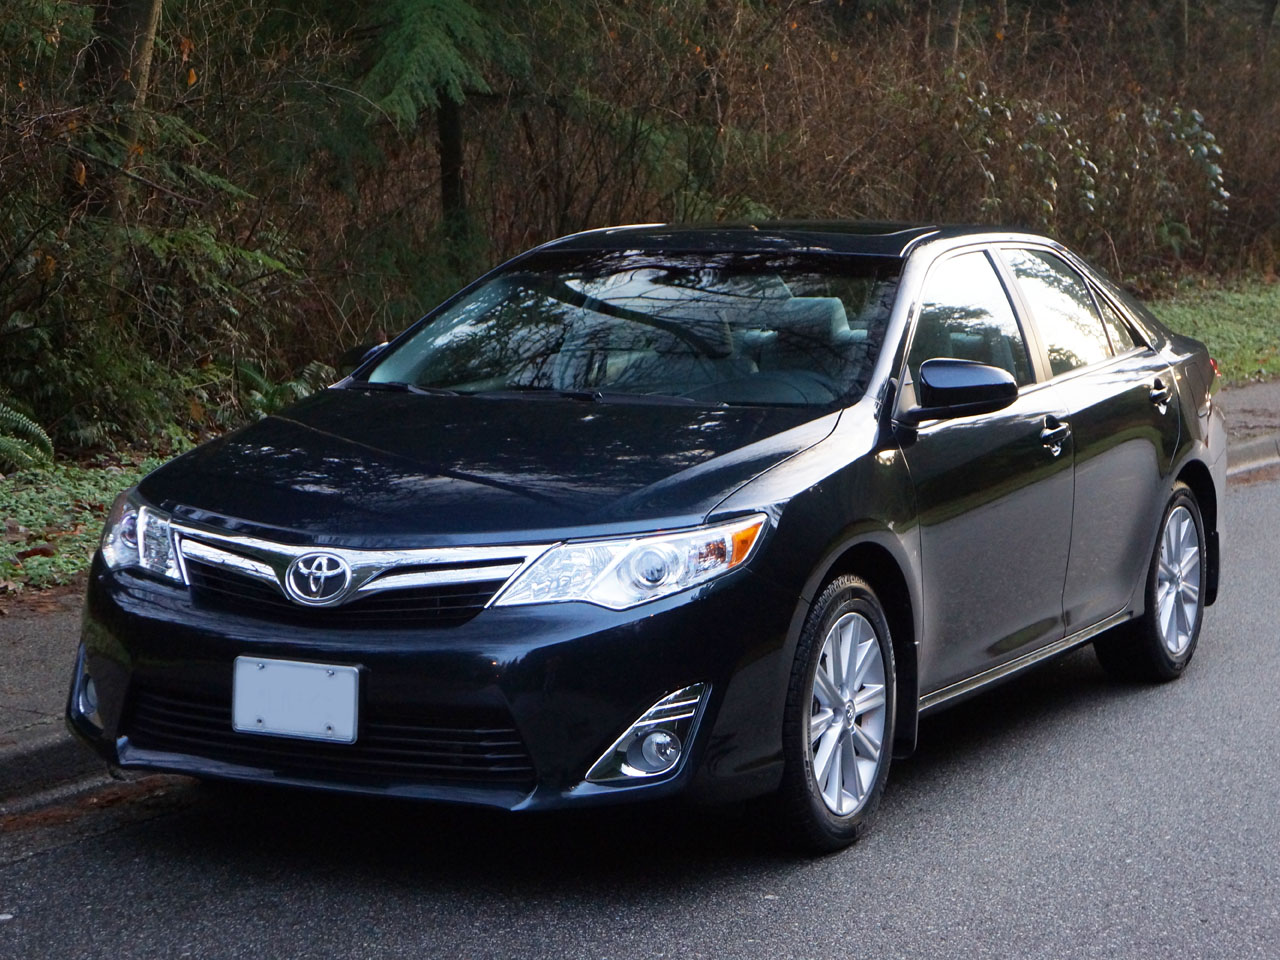 2014 Toyota Camry Xle Road Test Review Carcostcanada